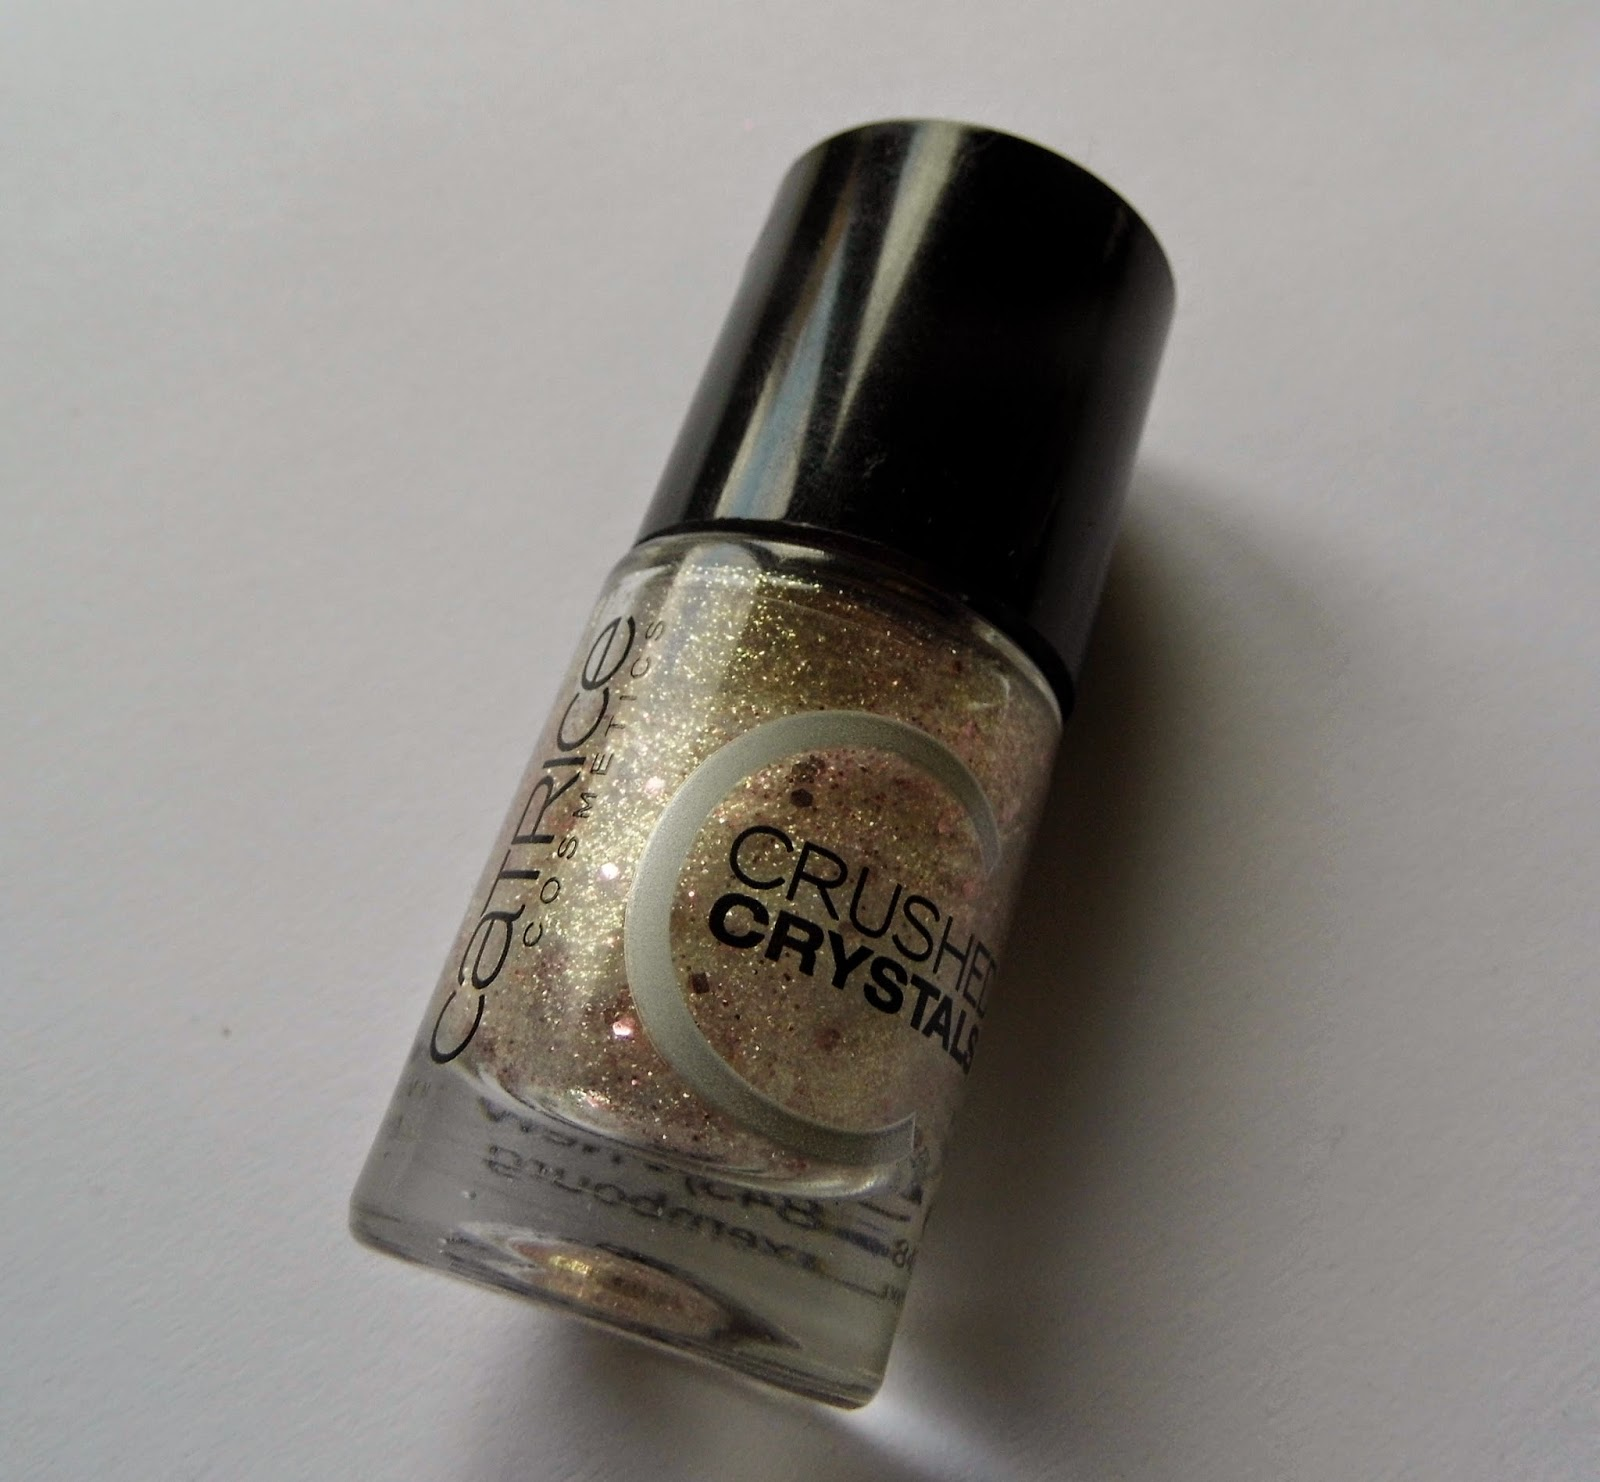 catrice-crushed-crystals-oyster-and-champagne-nail-polish-bottle-picture